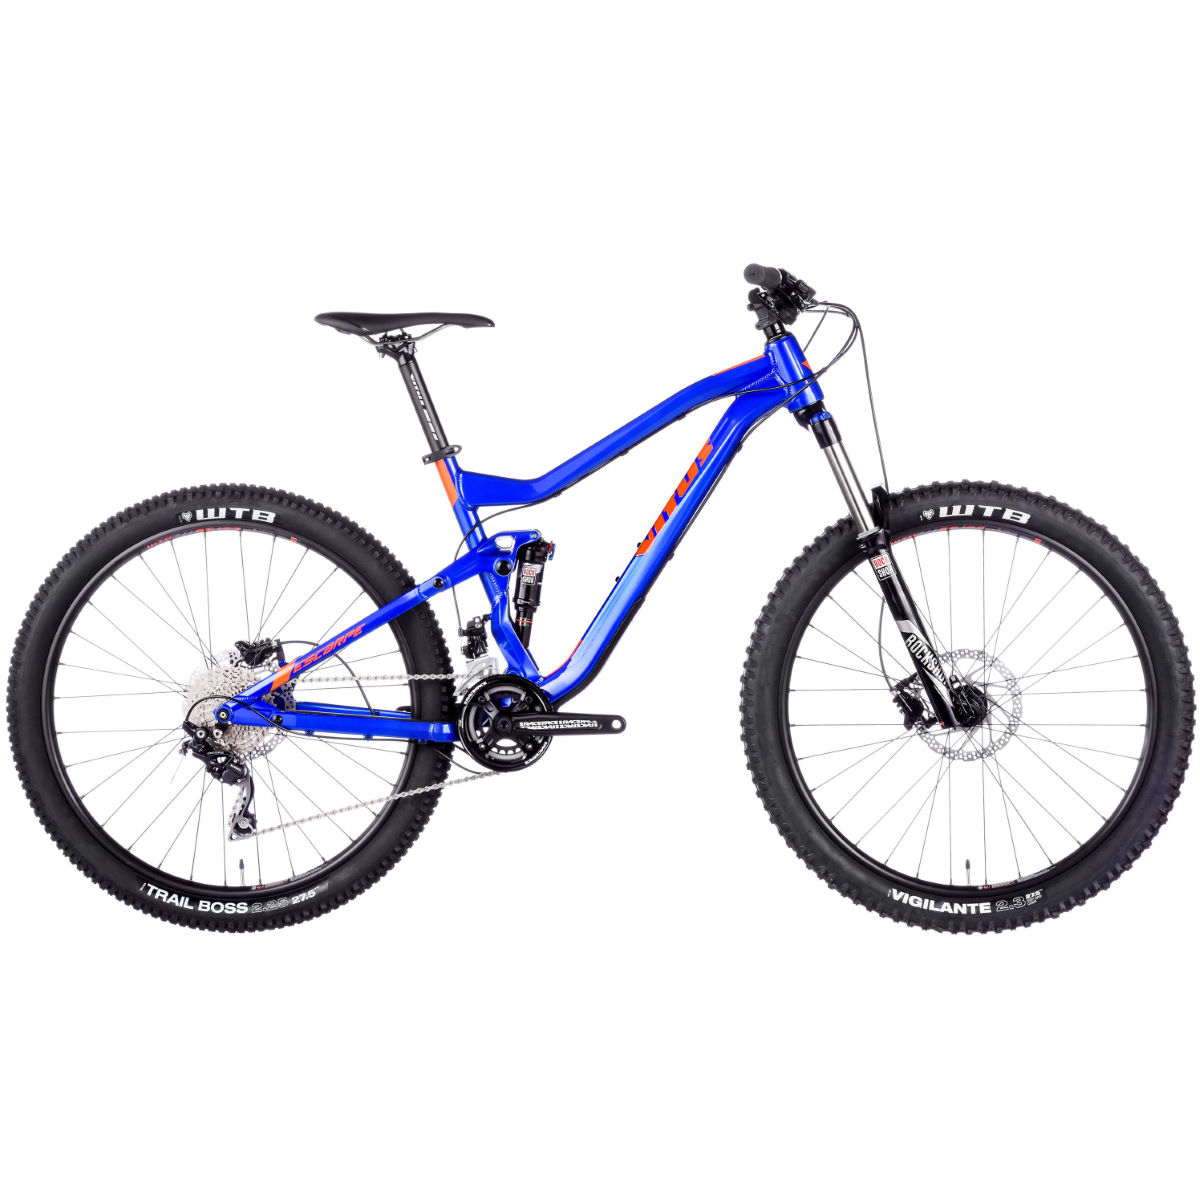 VTT Vitus Escarpe (2017) - Small Stock Bike Blue/Orange VTT tout suspendu